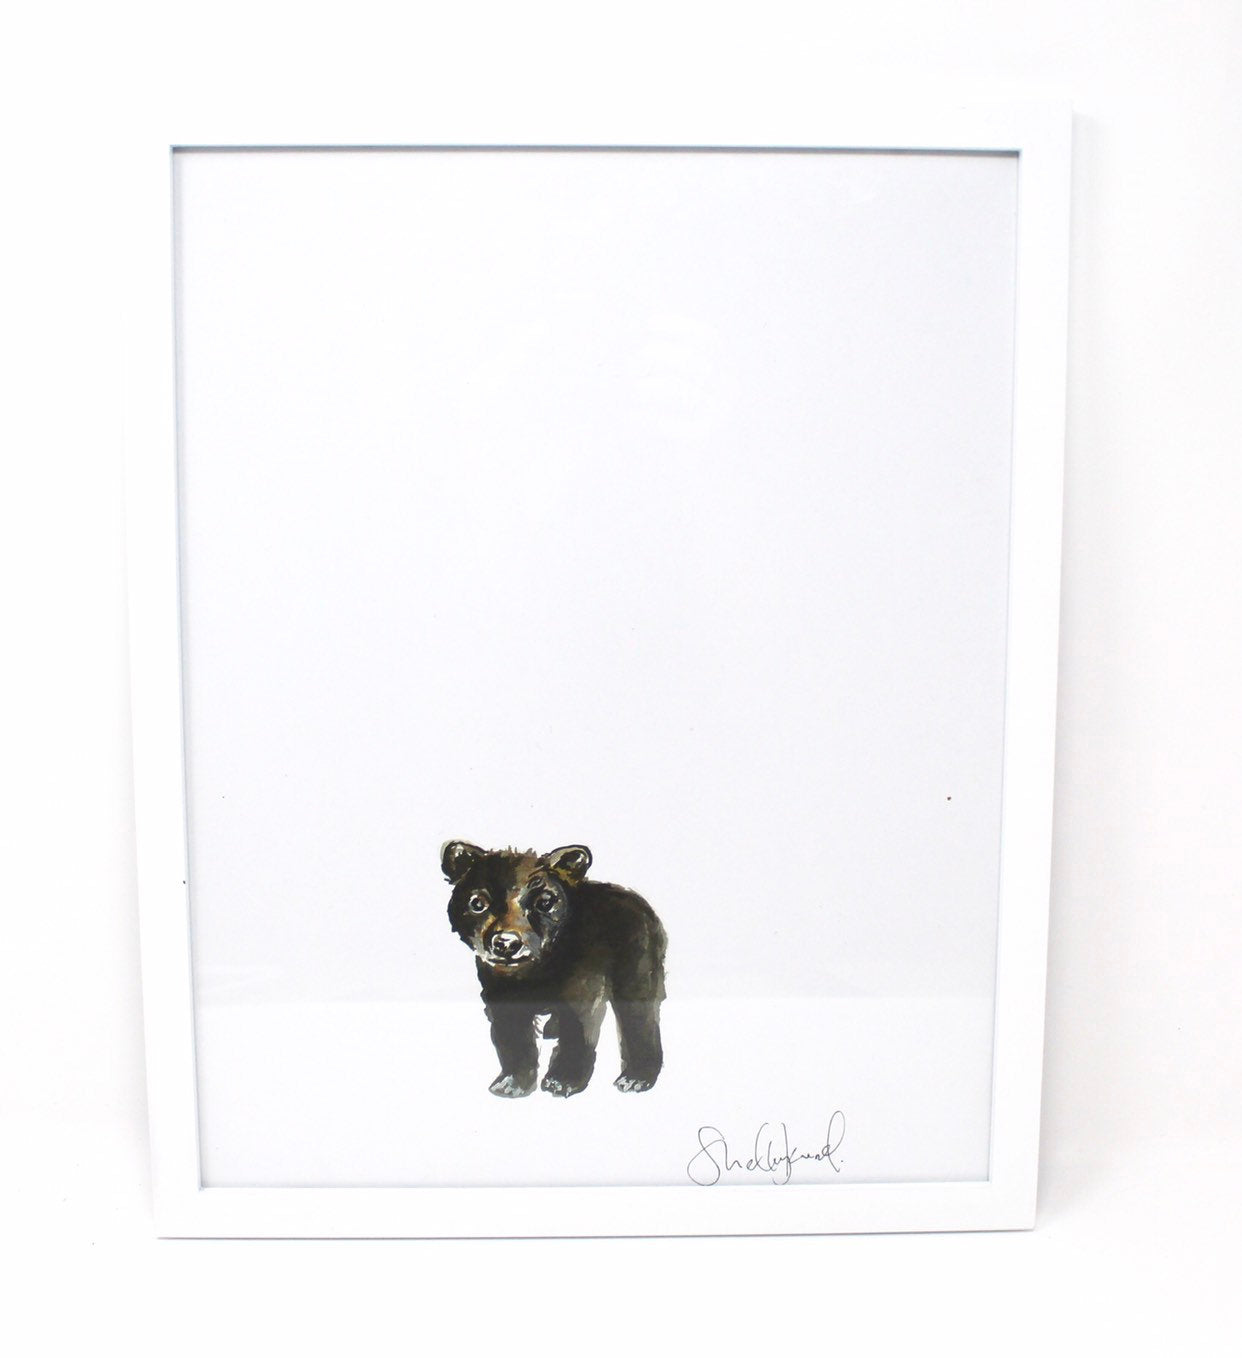 Baby Black Bear Art Print- 24x24in, Animal Art, Nursery Artwork, Baby Room  Wall Decor, Simple Design